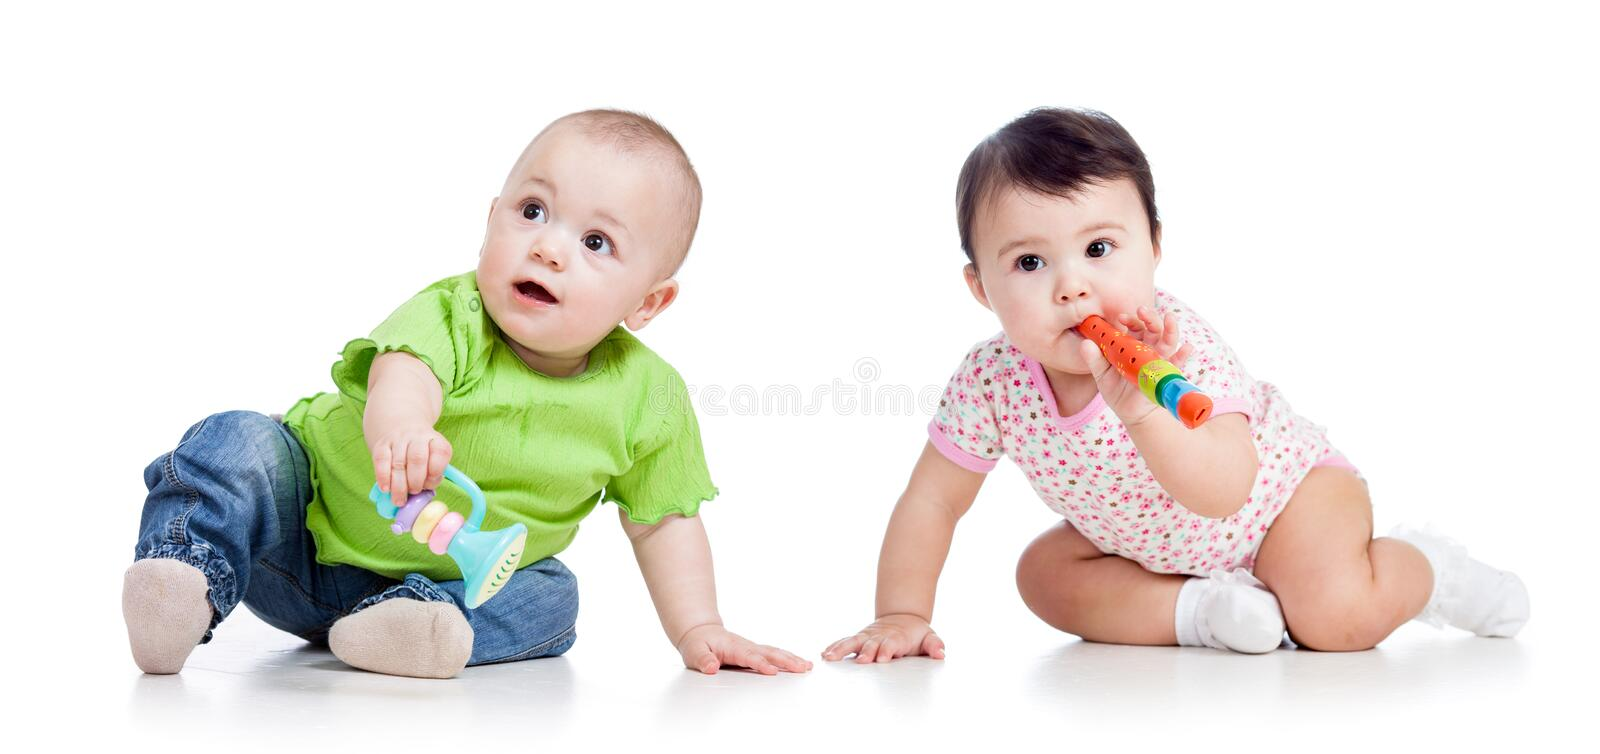 Babies kids play. Funny babies girls with musical toys on white royalty free stock photos